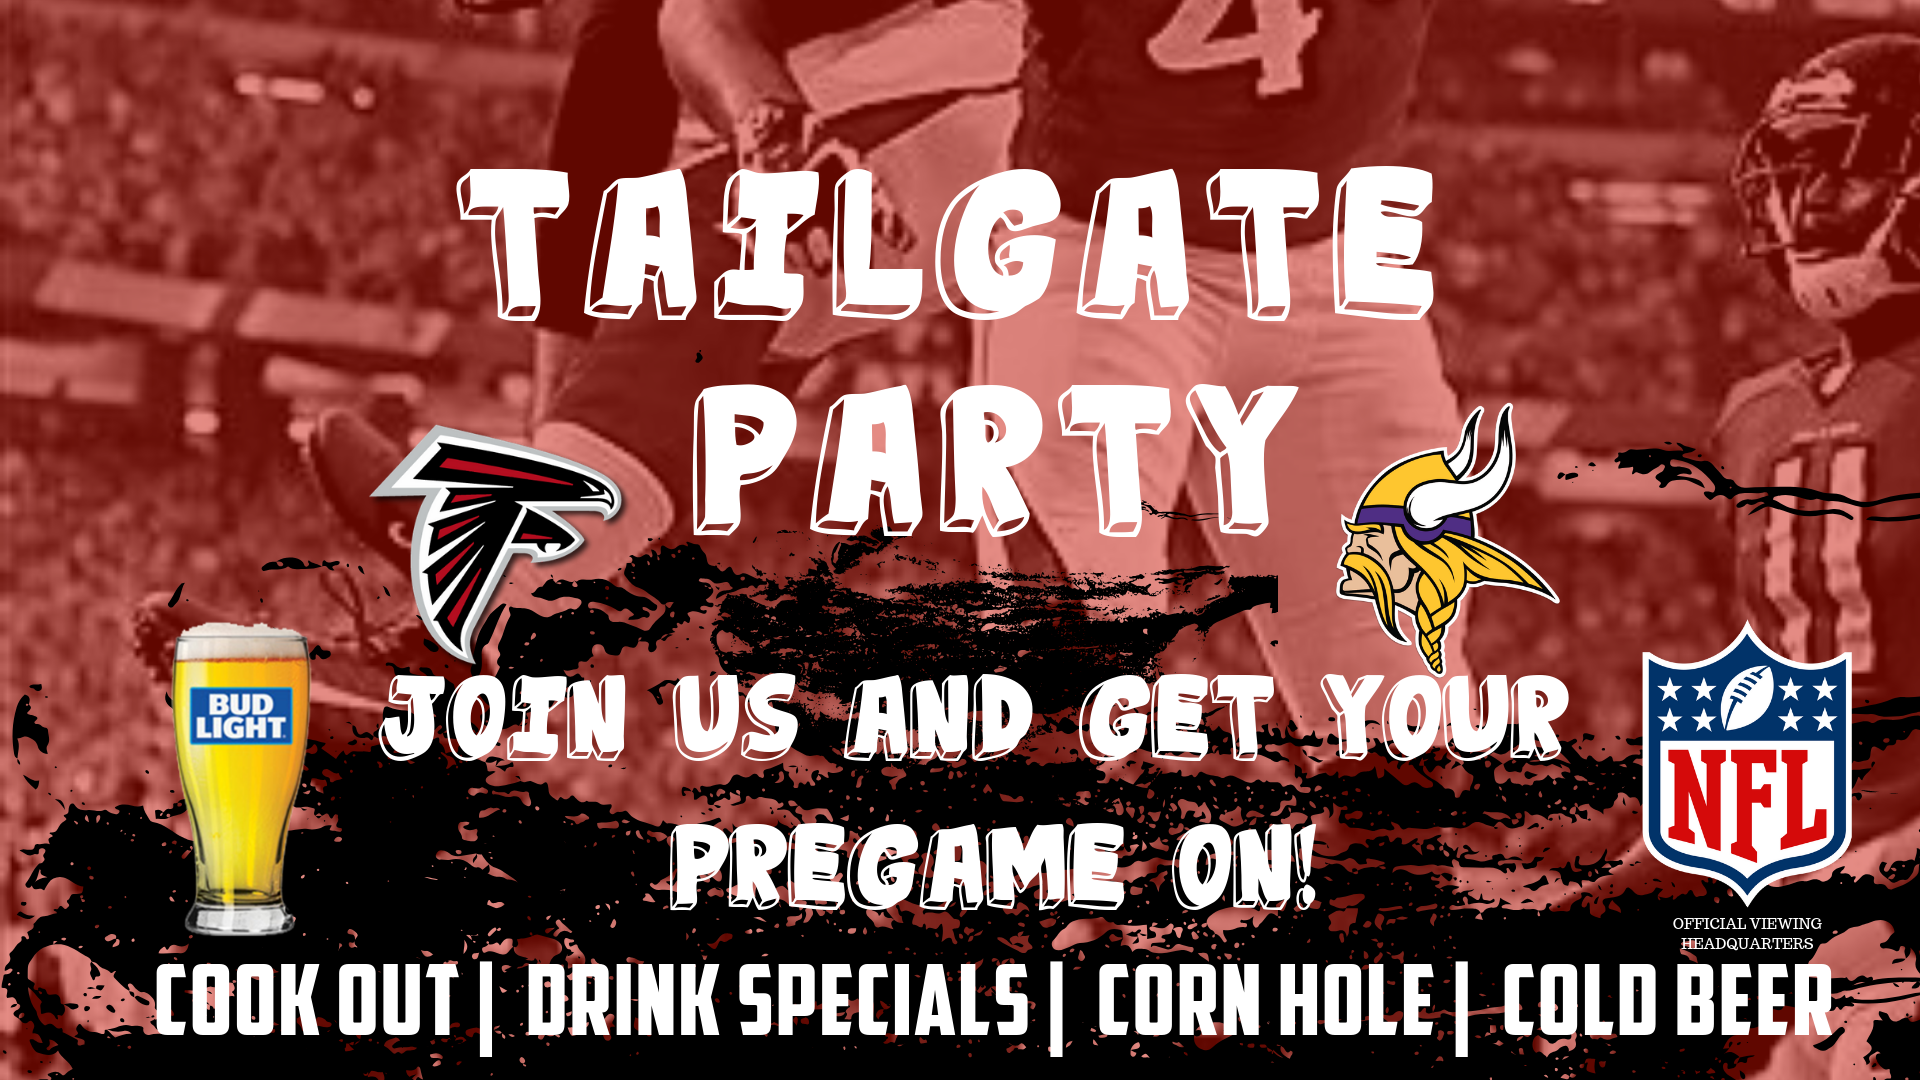 TAILGATE PARTY | Midtown